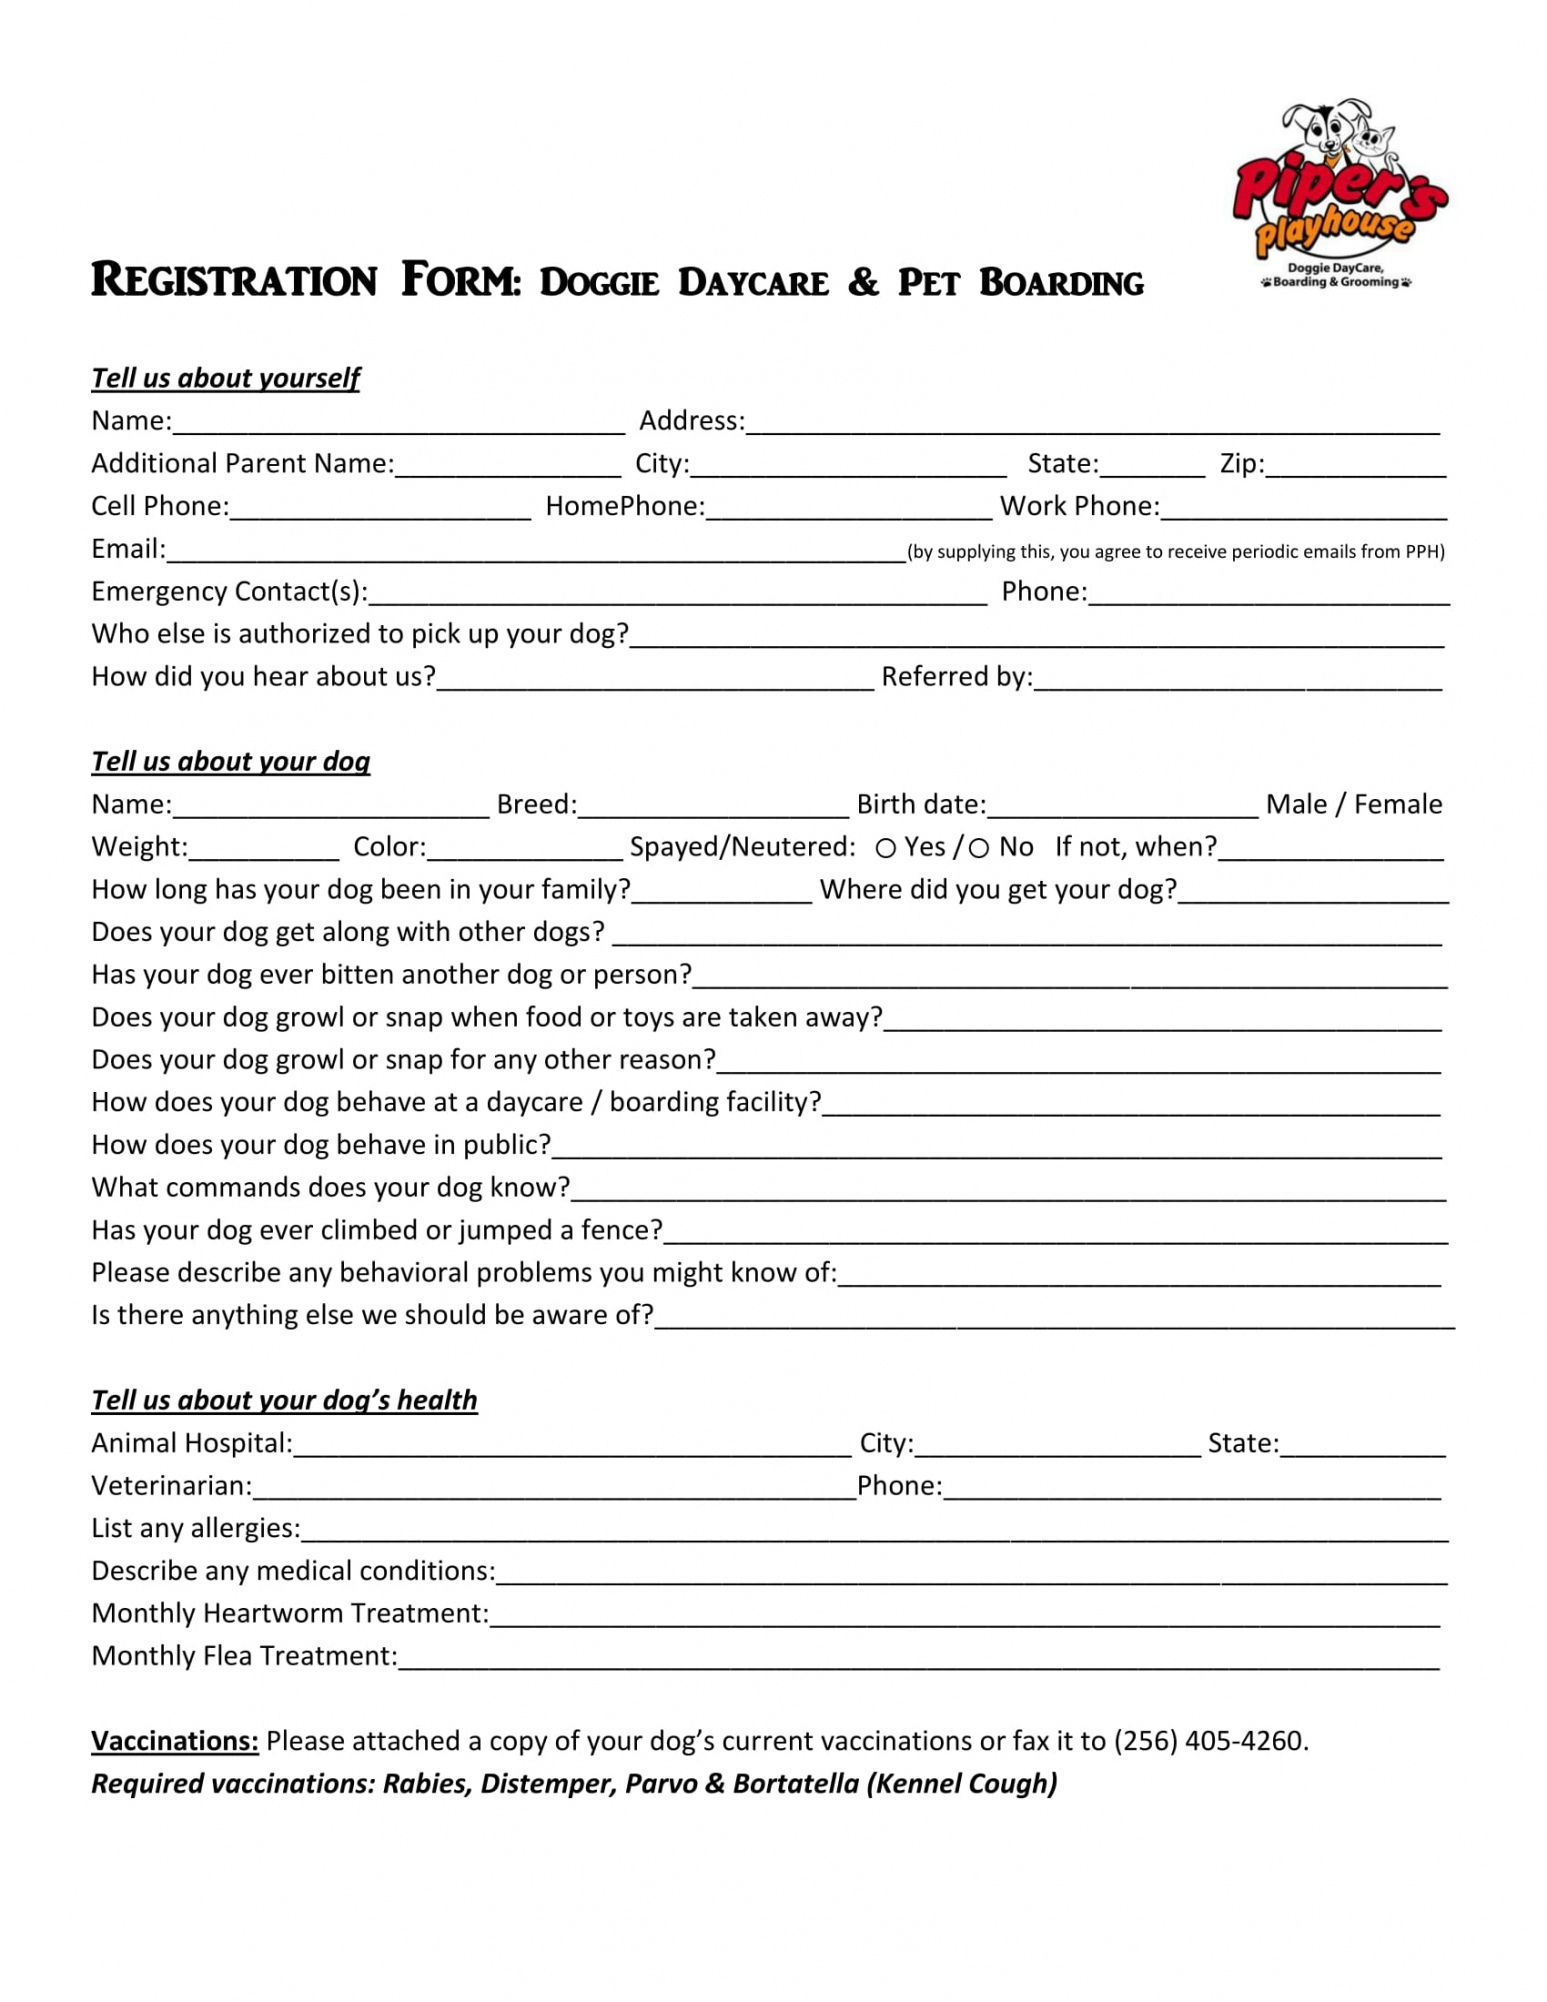 editable free 11 daycare registration forms in pdf  ms word pet boarding form template excel